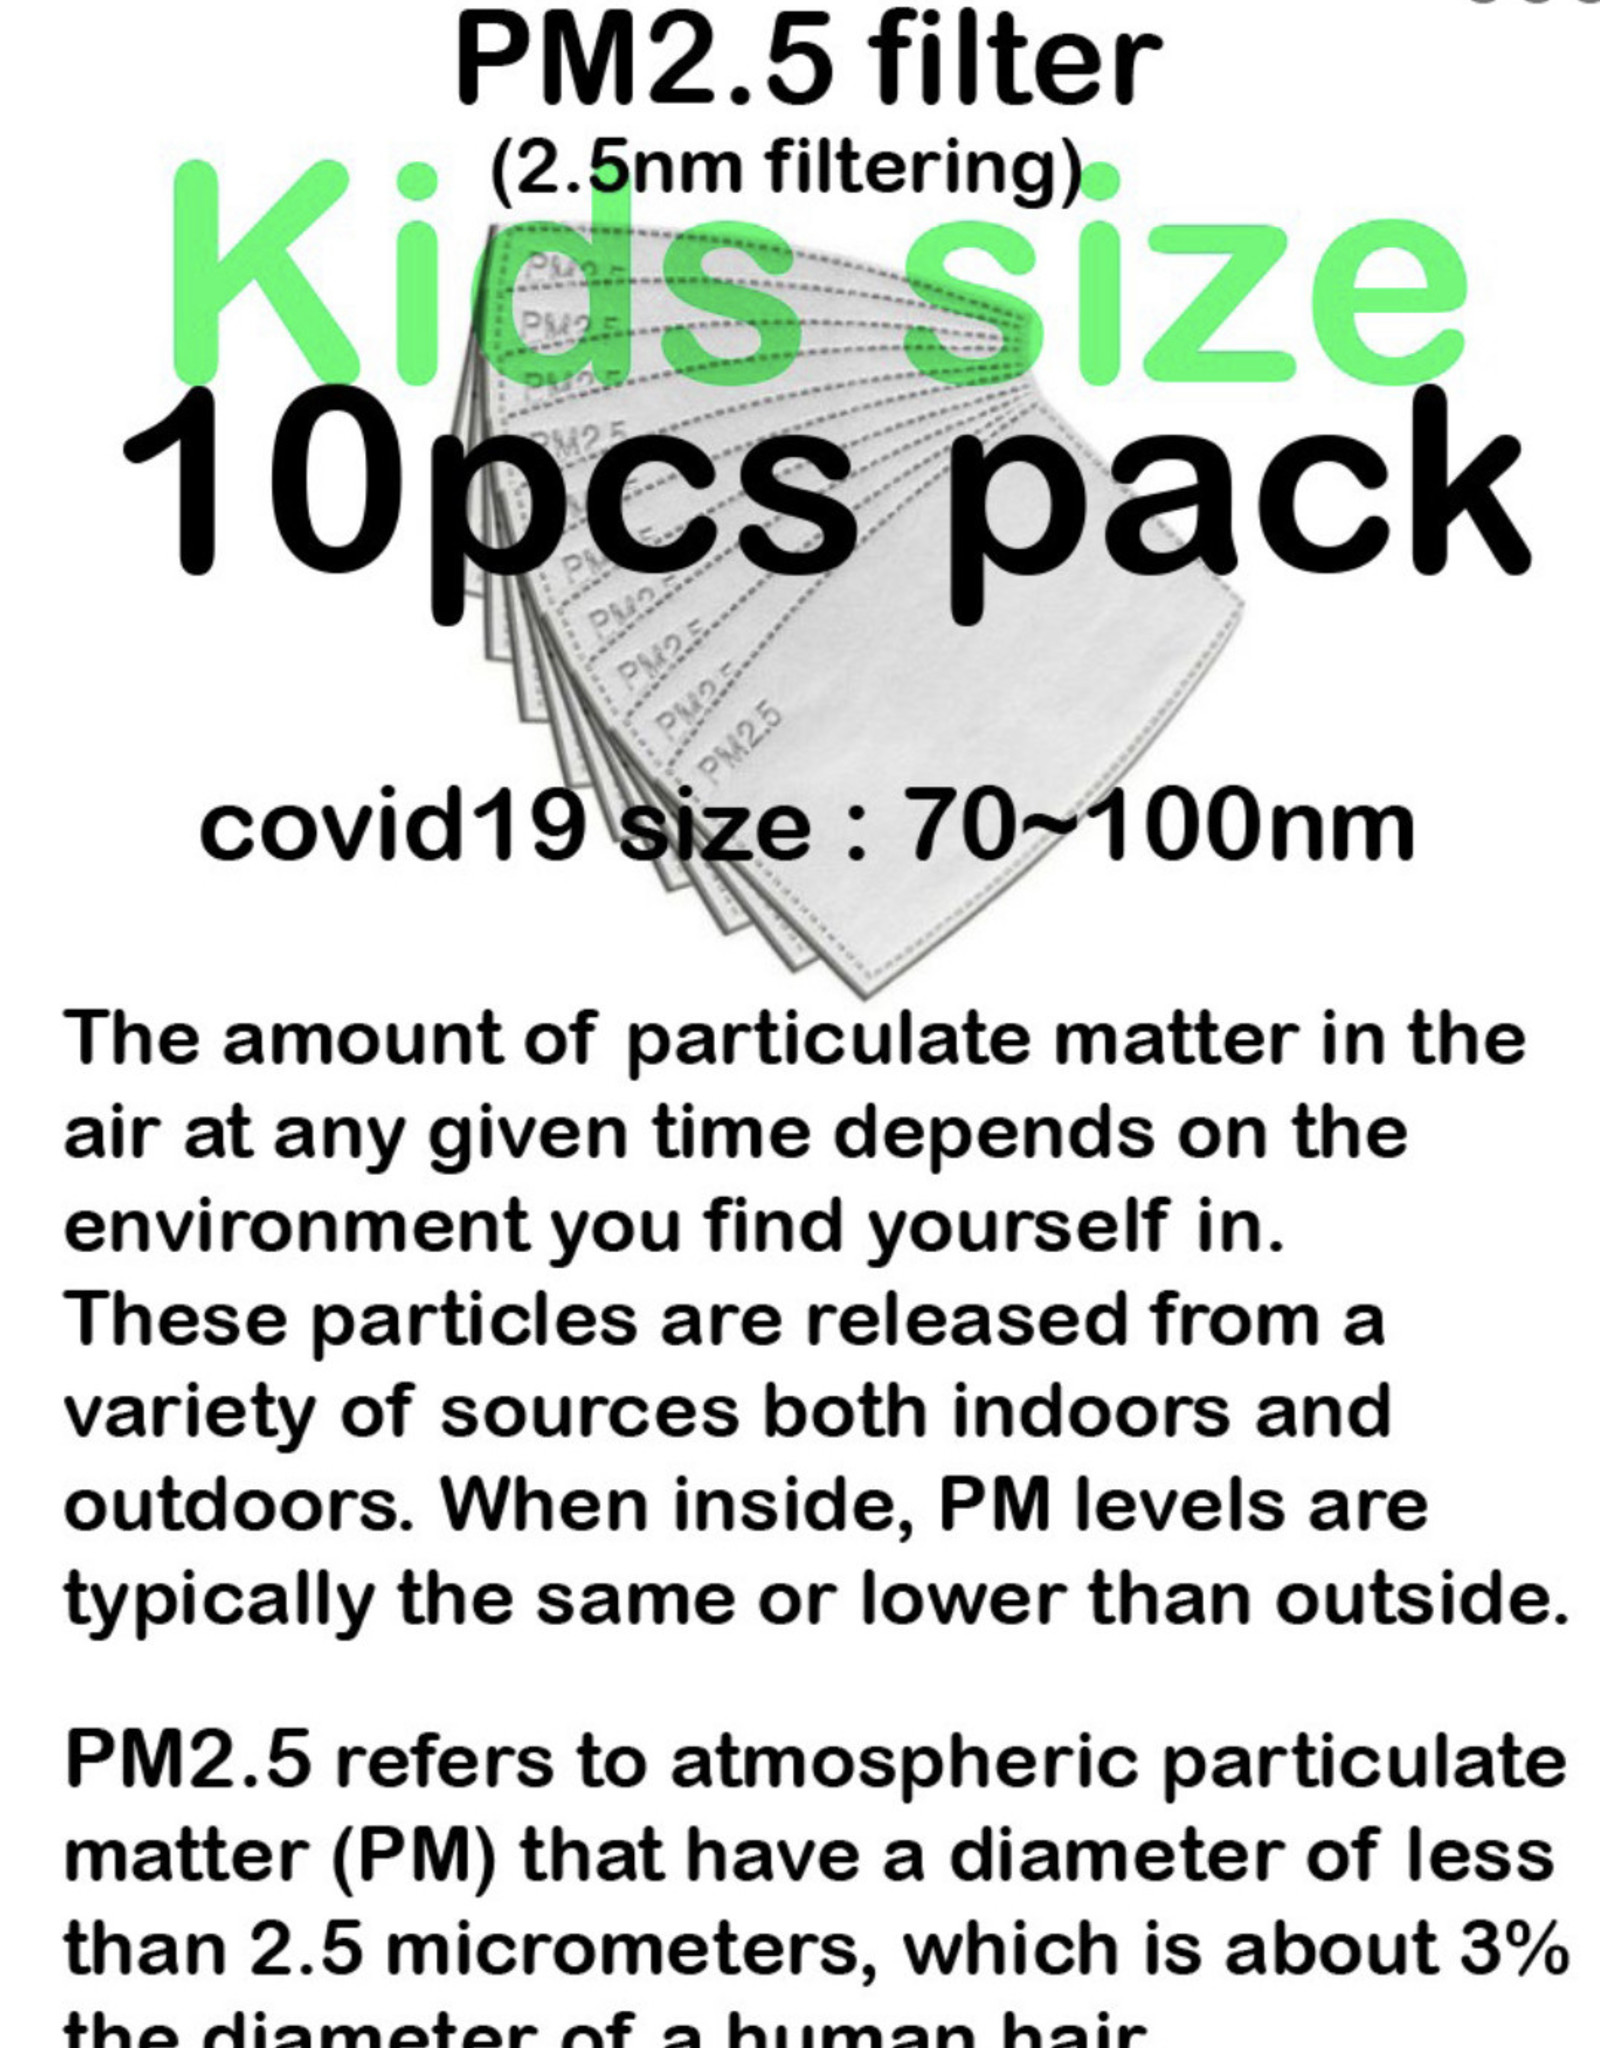 FACE MASK FILTER KN95 5 LAYER PROTECTION 10 PACK FITS INSIDE ANY CHILD MASK W/ POCKET